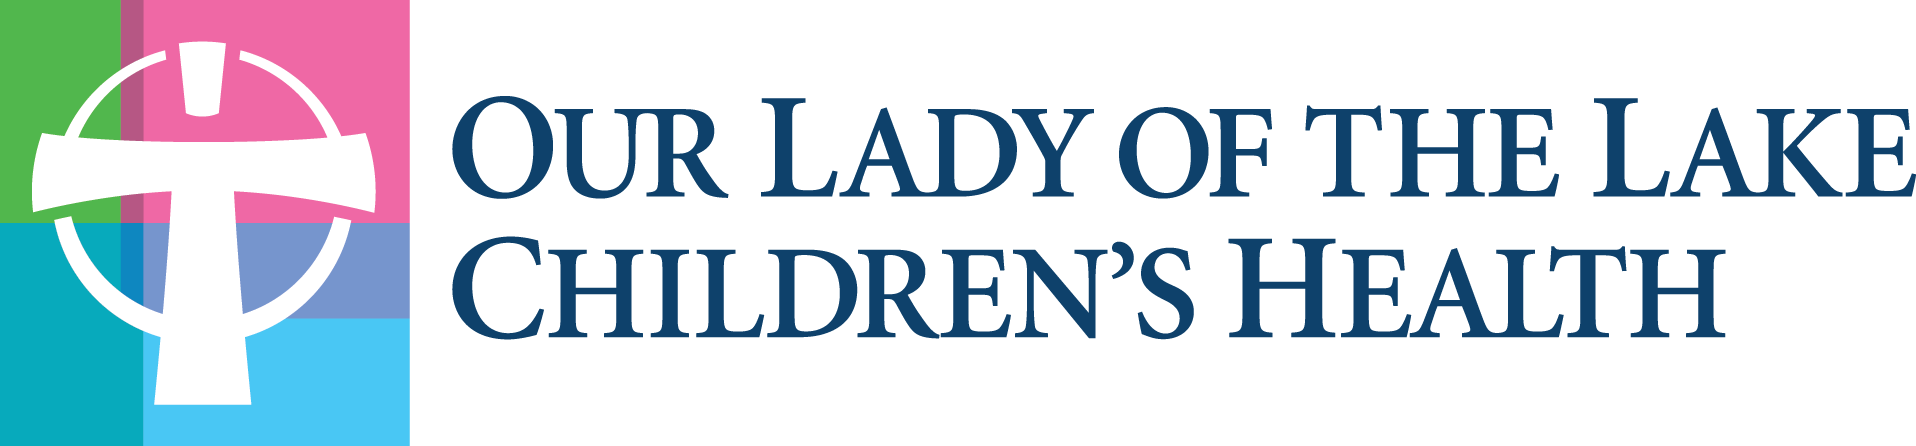 Our Lady of the Lake Children's Health